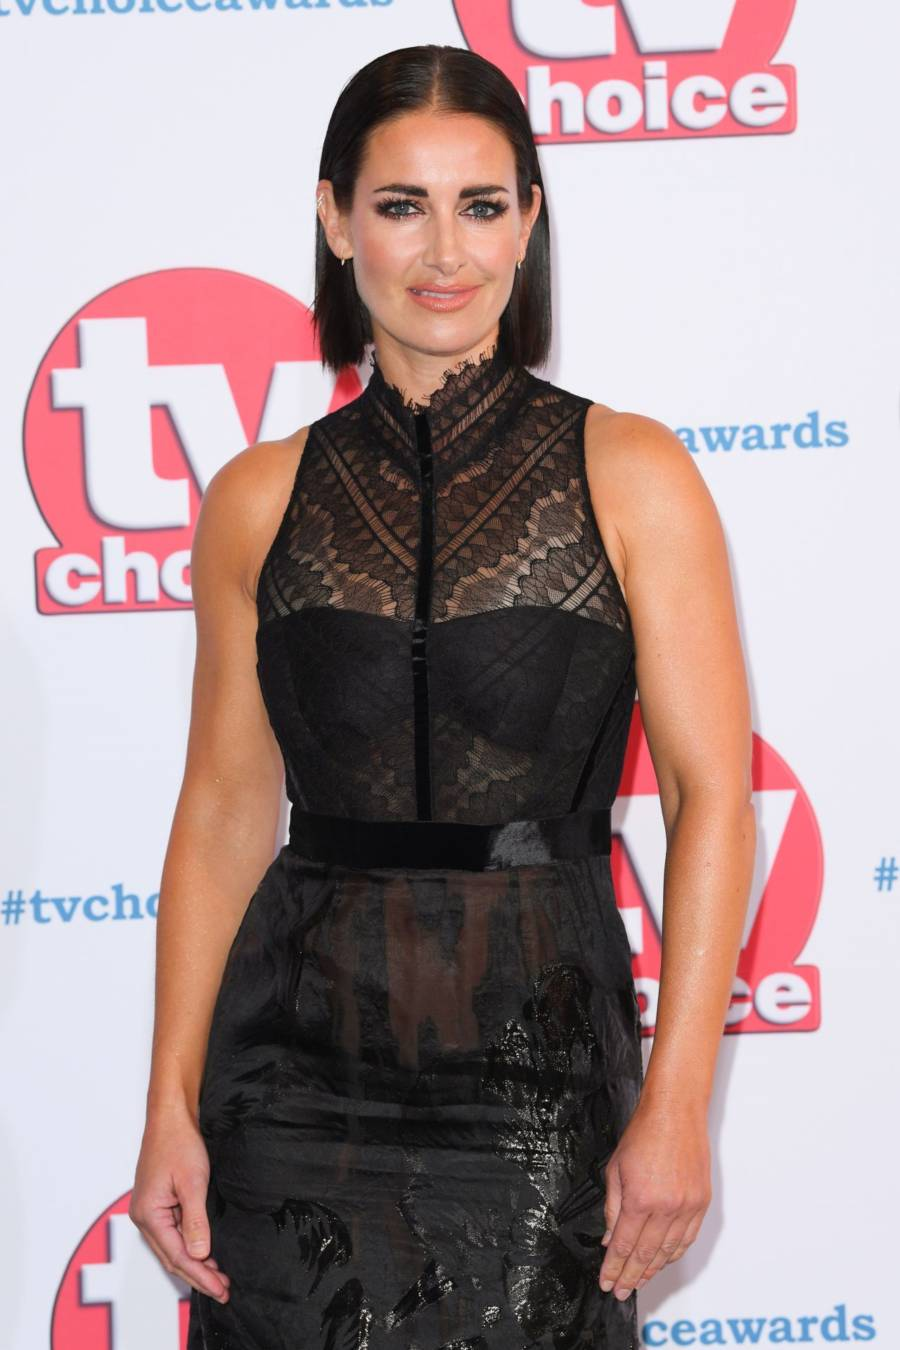 Kirsty Gallacher At TV Choice Awards in London